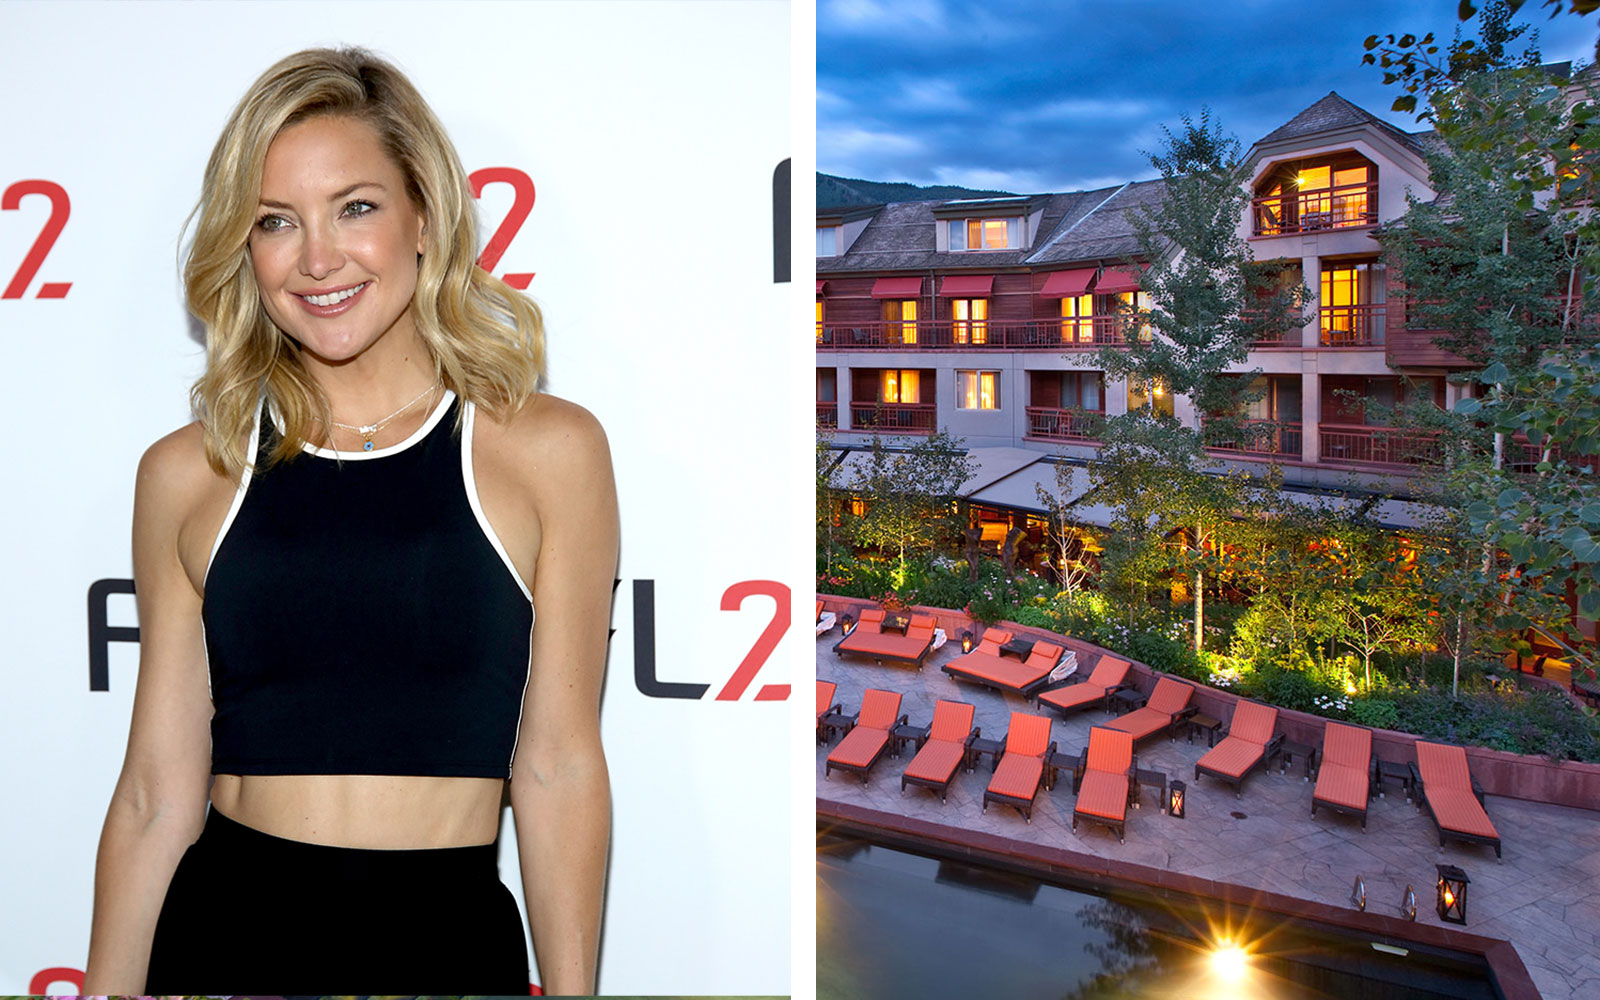 Hotels for Celebrity Sightings: The Little Nell, Aspen, Colorado